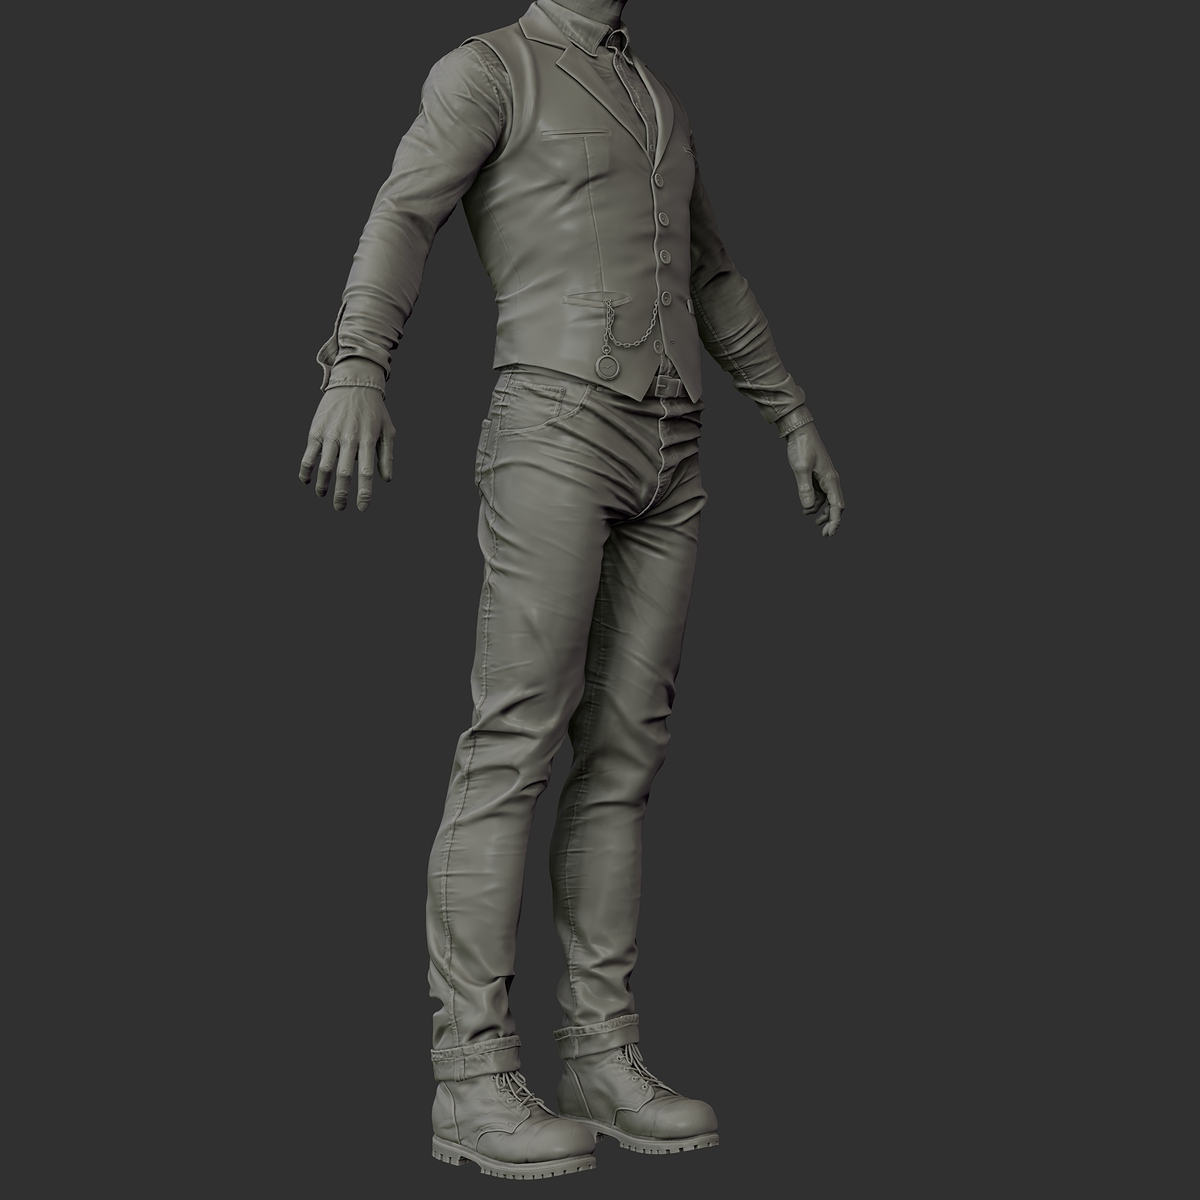 ZBrush Document09